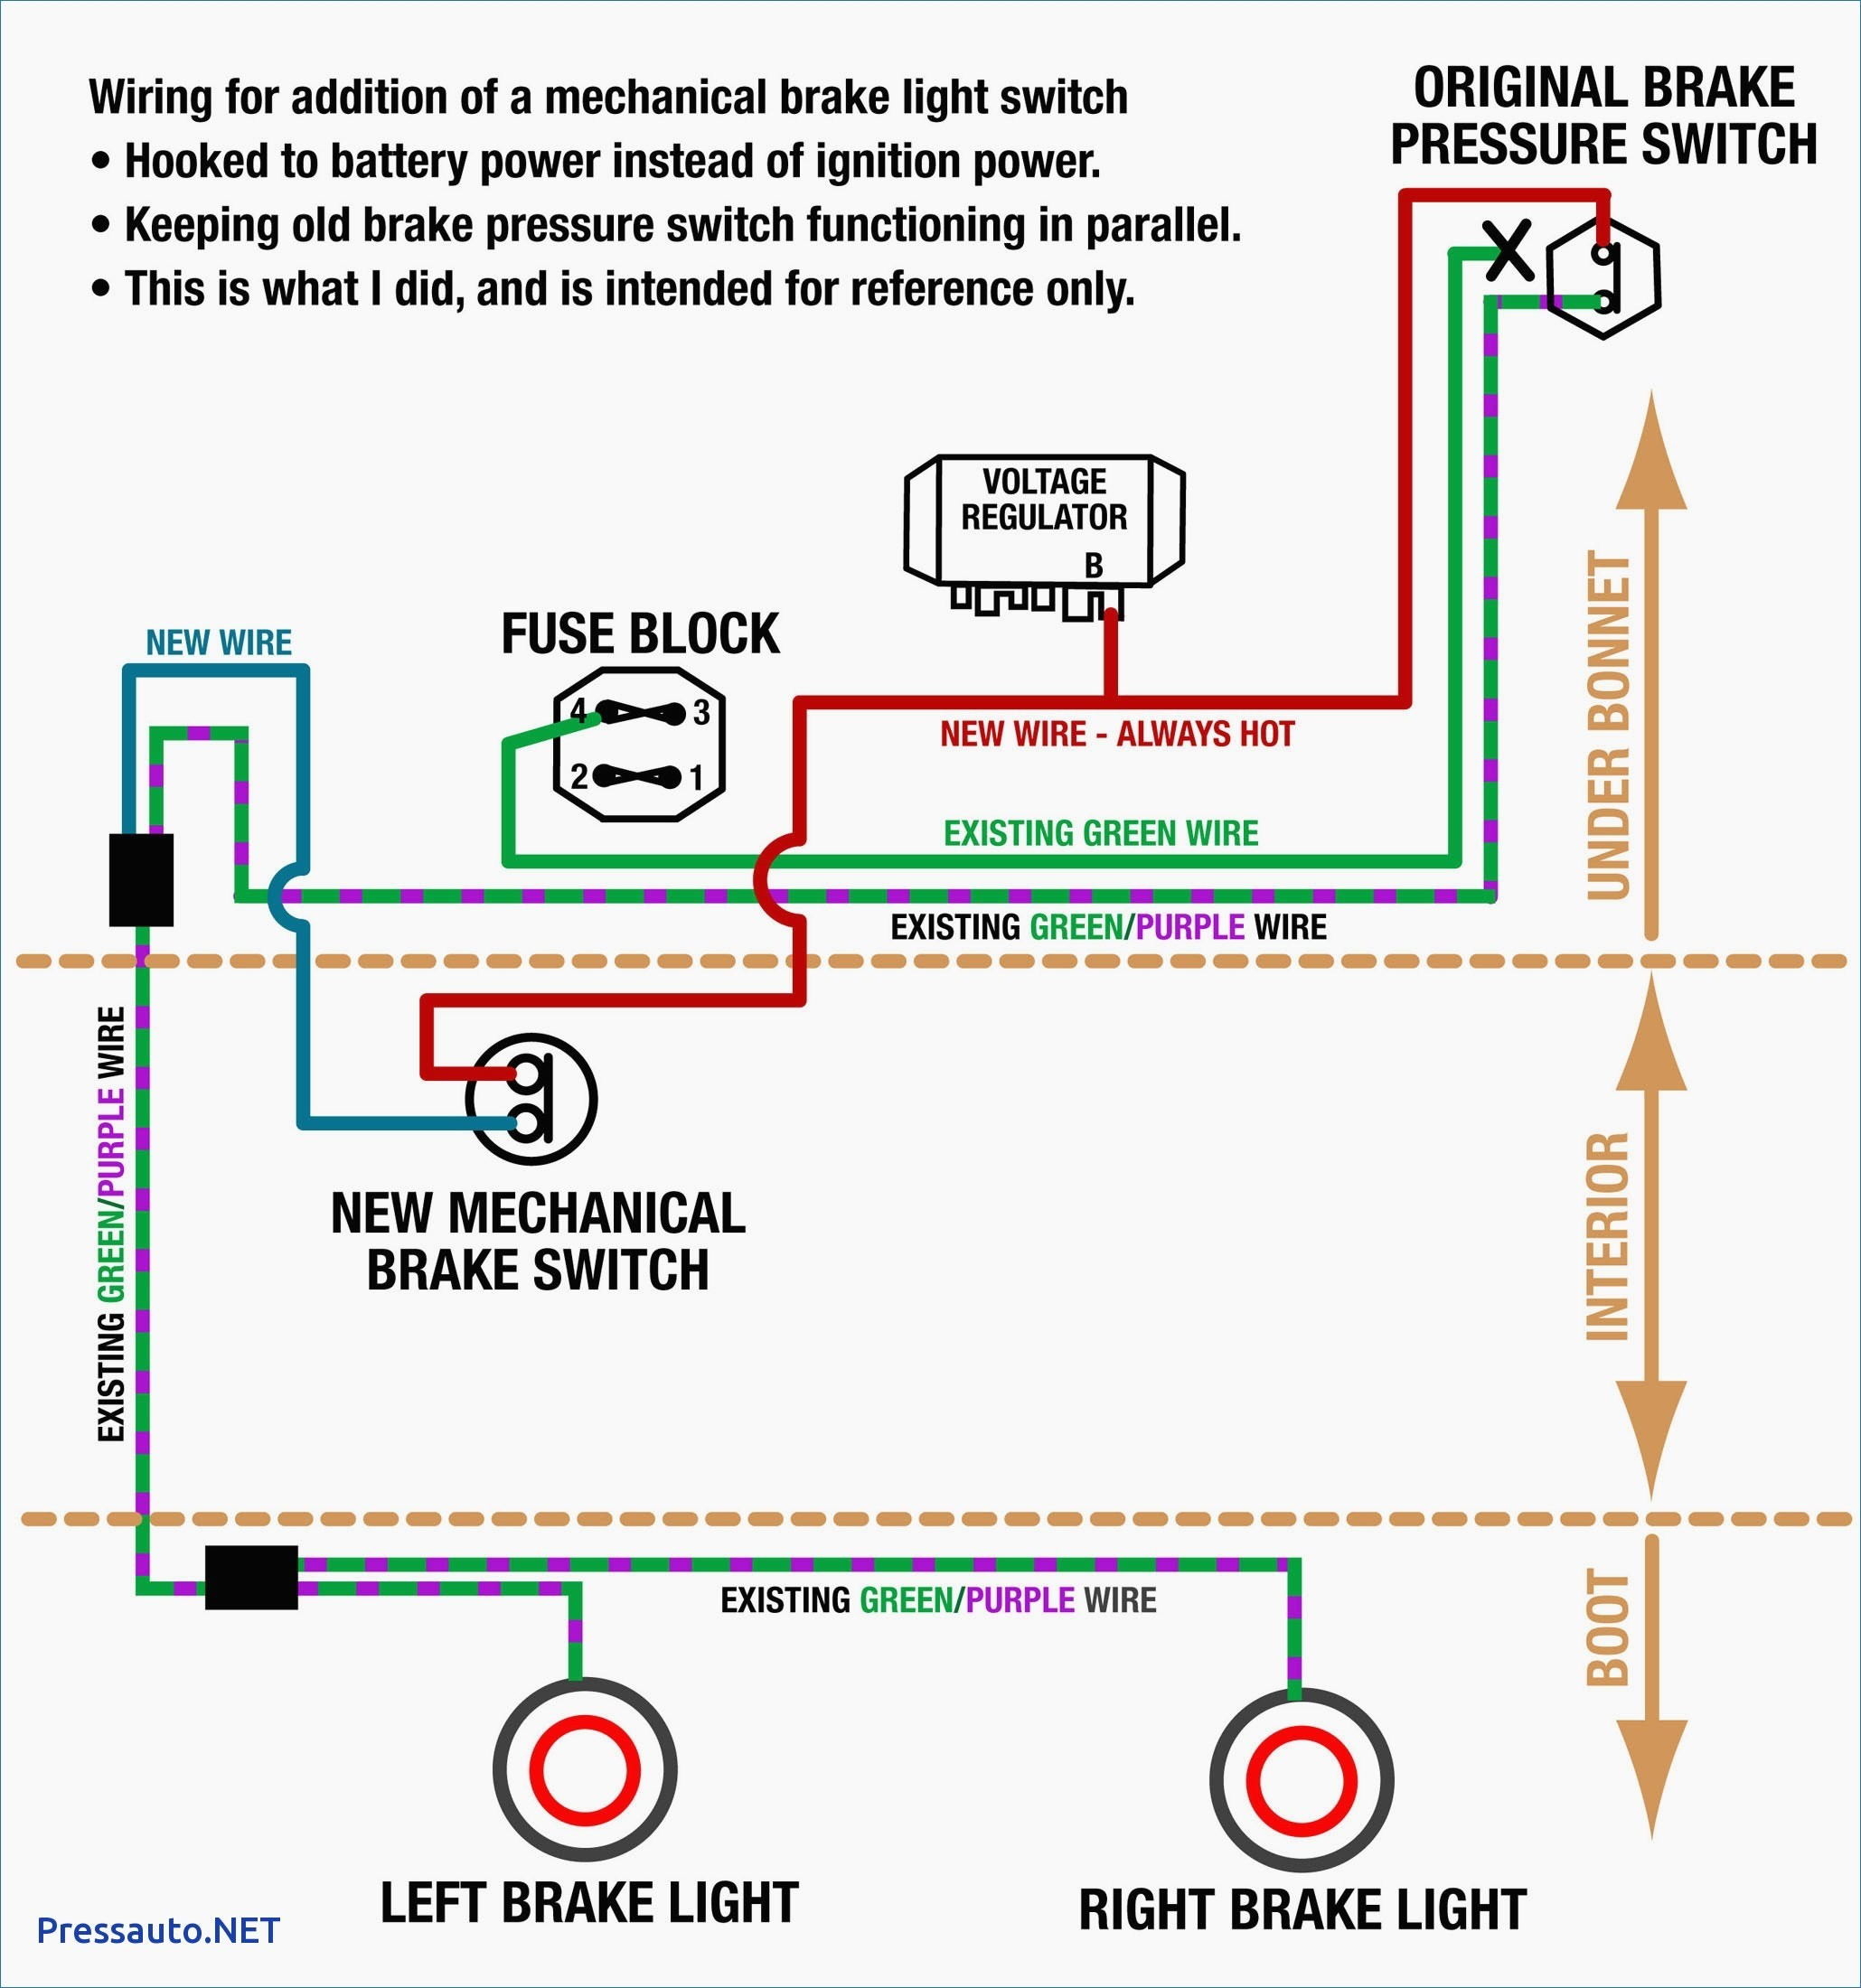 Tractor Trailer Wiring Diagram My Wiring DIagram